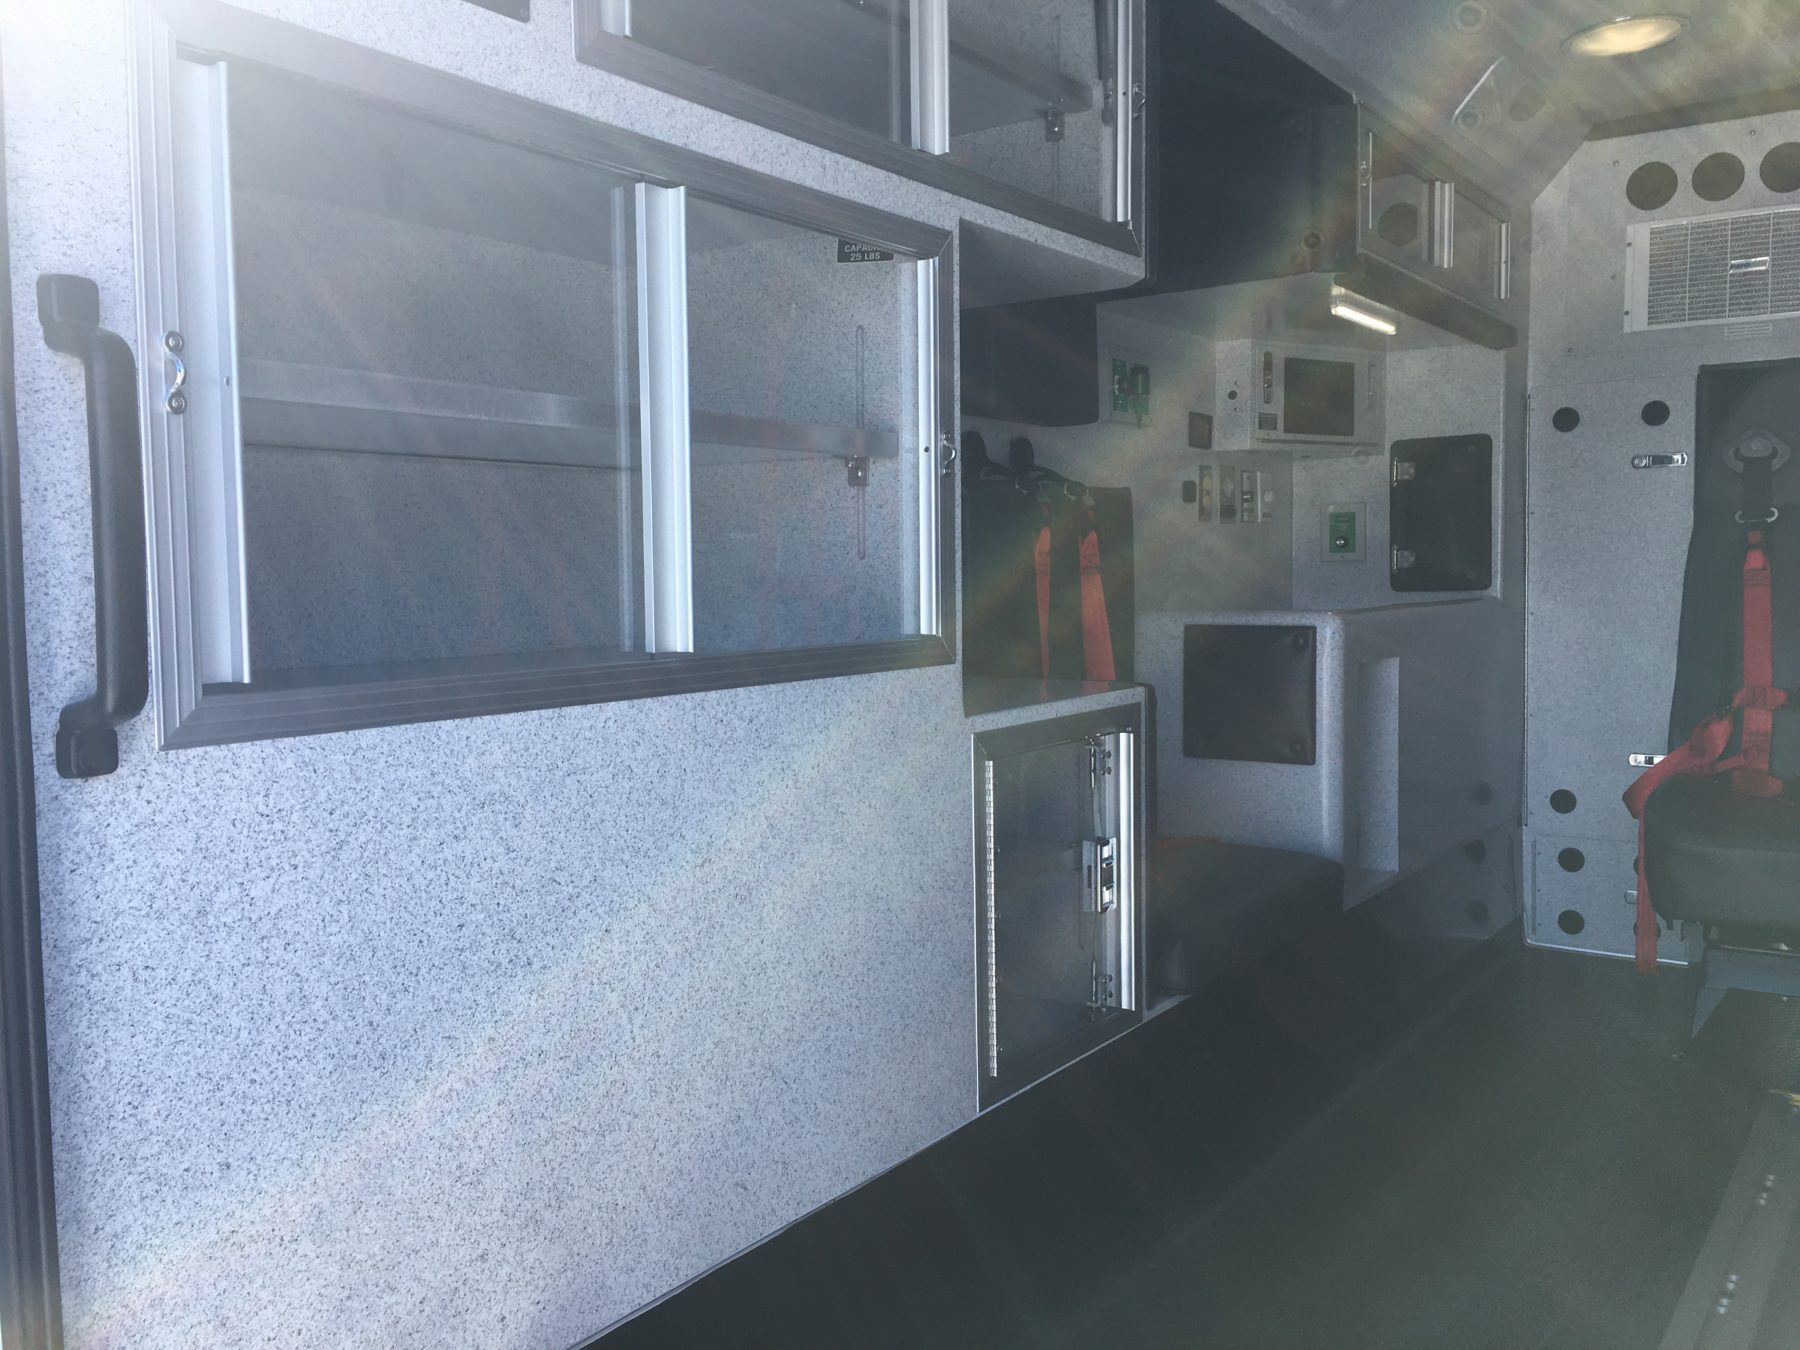 2020 Ram 4500 4x4 Heavy Duty Ambulance For Sale – Picture 10